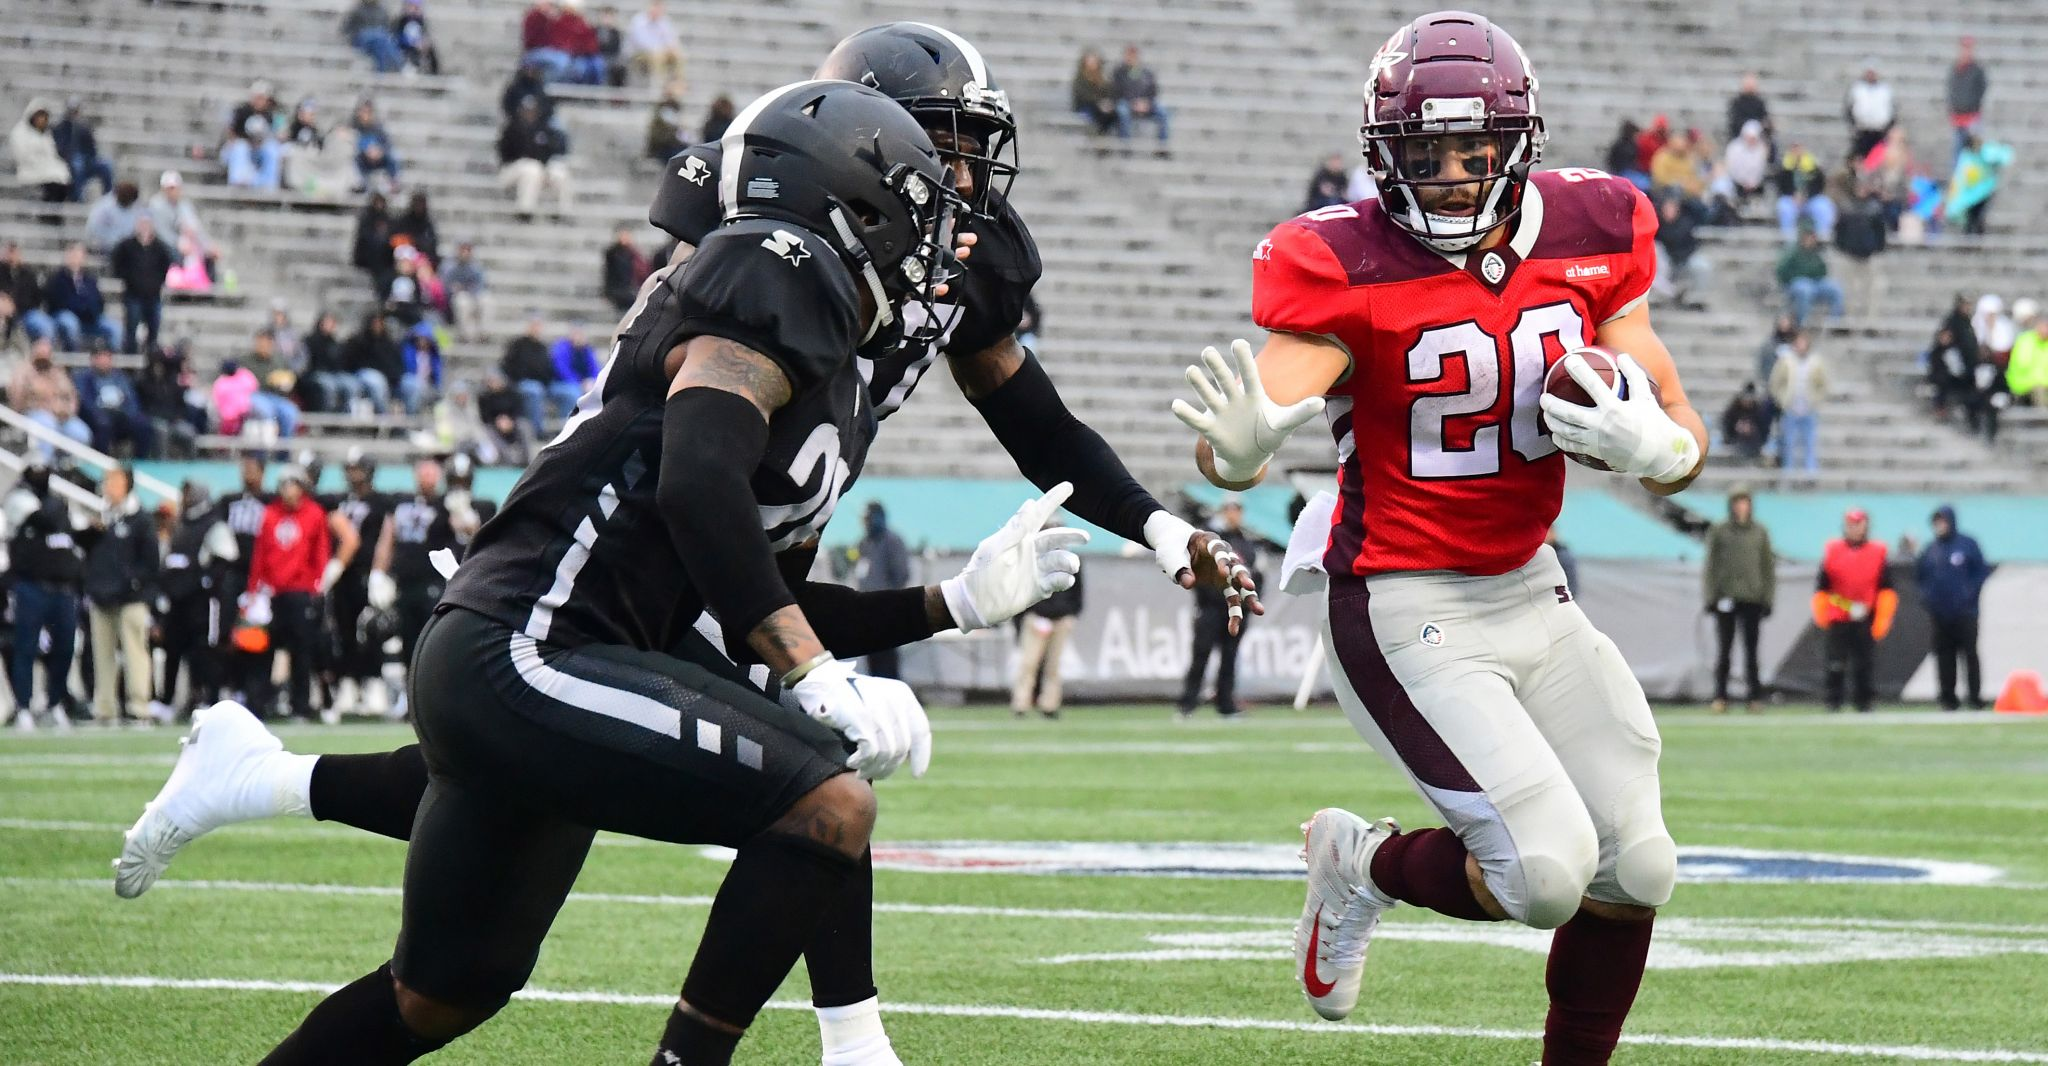 Kenneth Farrow carries San Antonio Commanders past Birmingham Iron